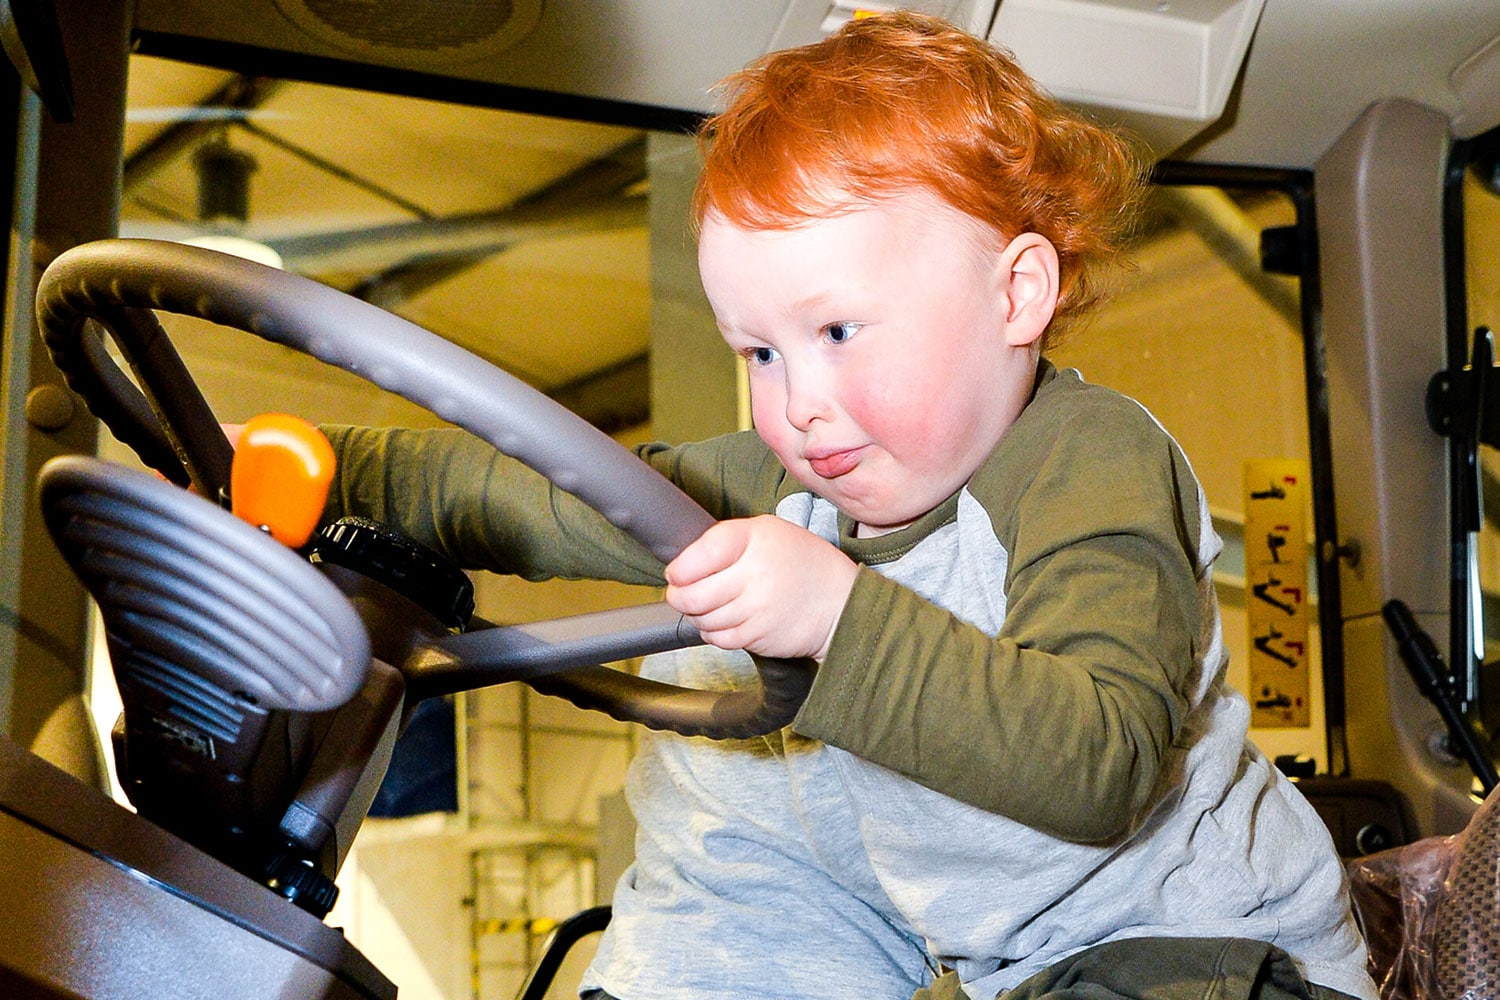 Child on tractor at Springtime Live